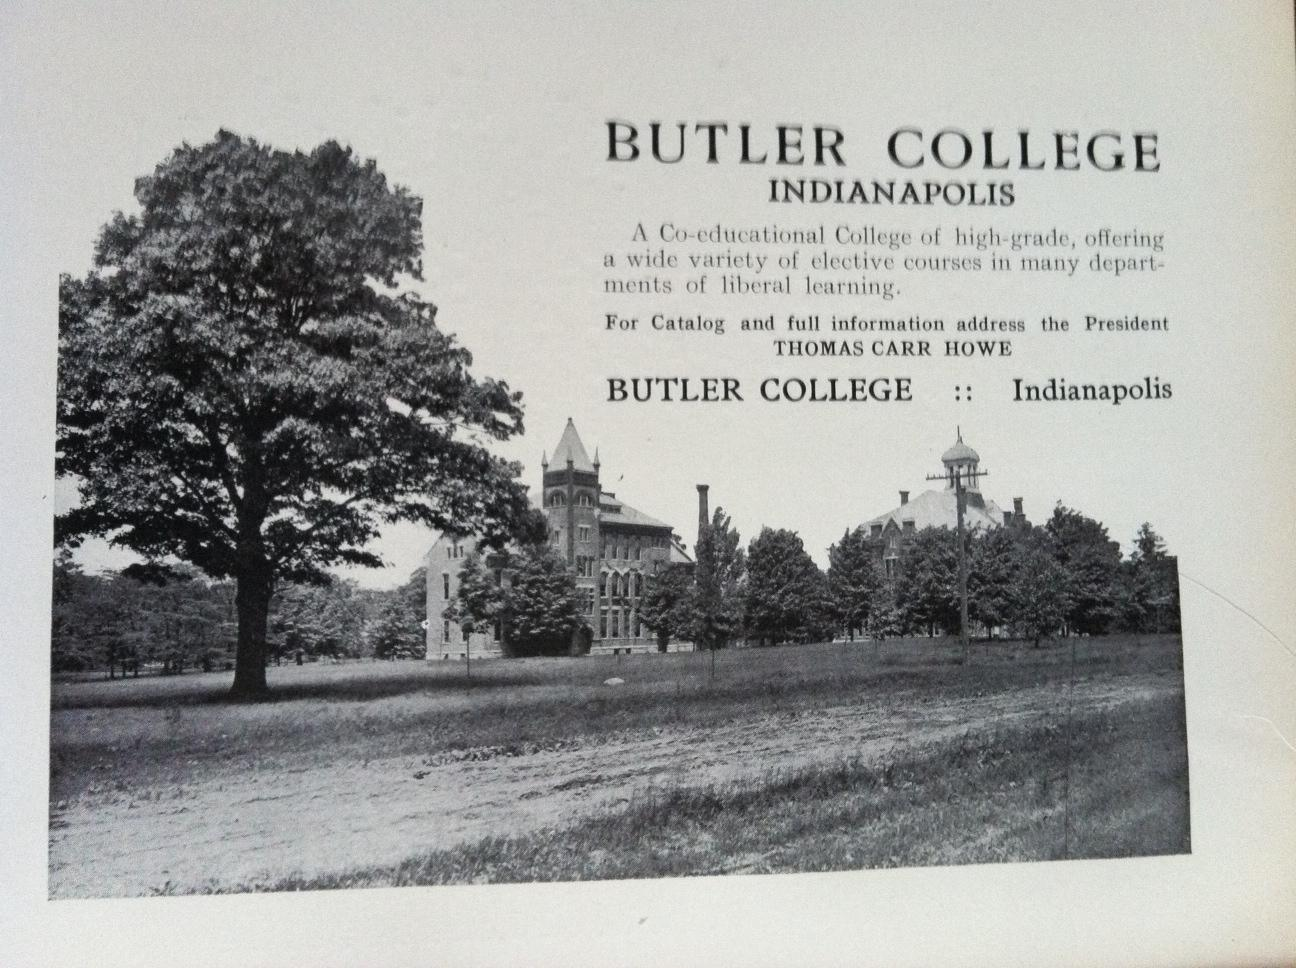 Sunday Adverts: Butler College and Bobbs-Merrill